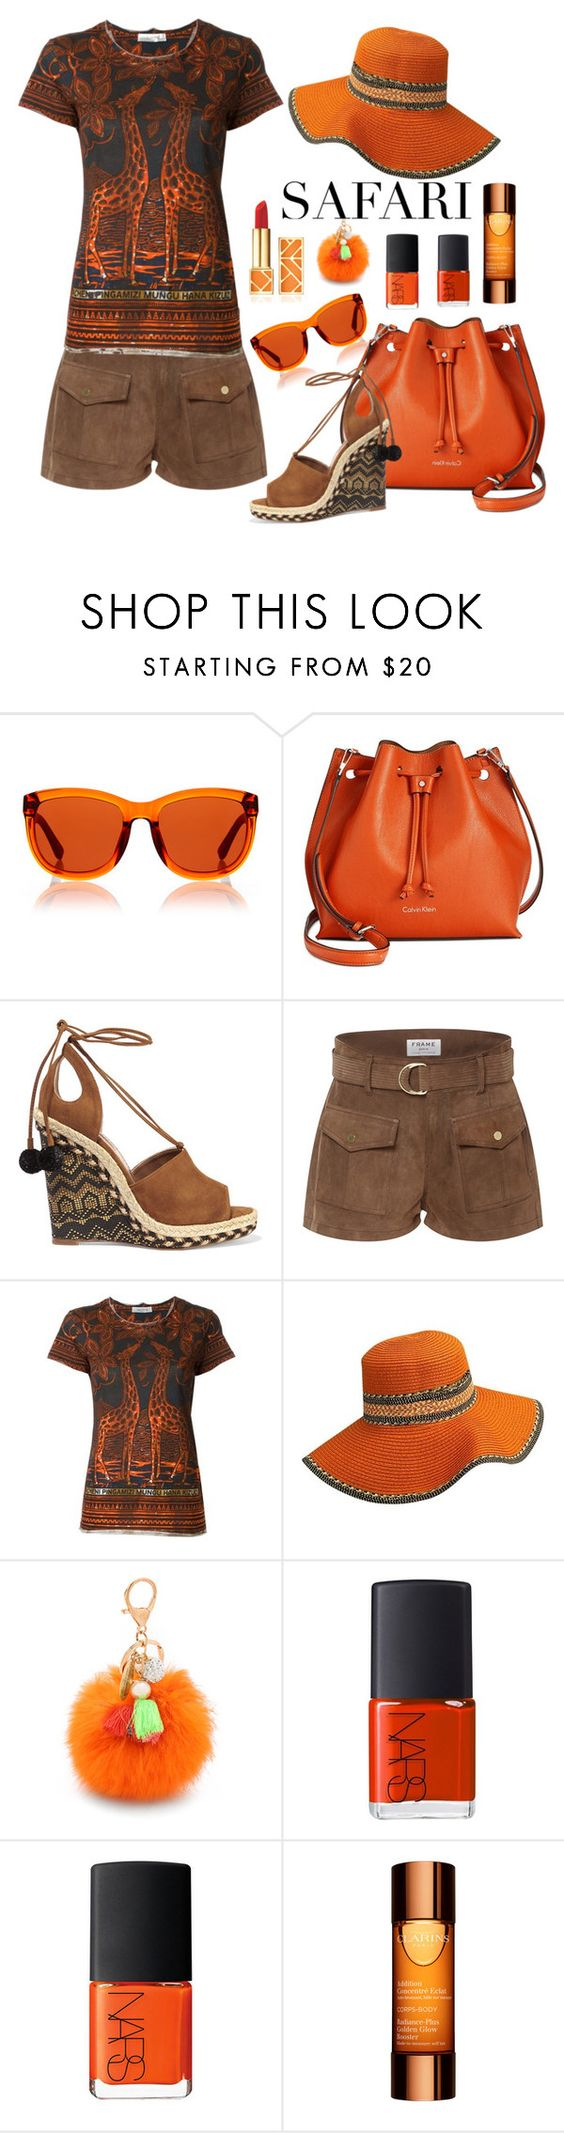 """""""Untitled #3652"""" by julinka111 ❤ liked on Polyvore featuring The Row, Calvin Klein, Aquazzura, Frame Denim, Valentino, Lenora Dame, NARS Cosmetics, Clarins and Tory Burch"""